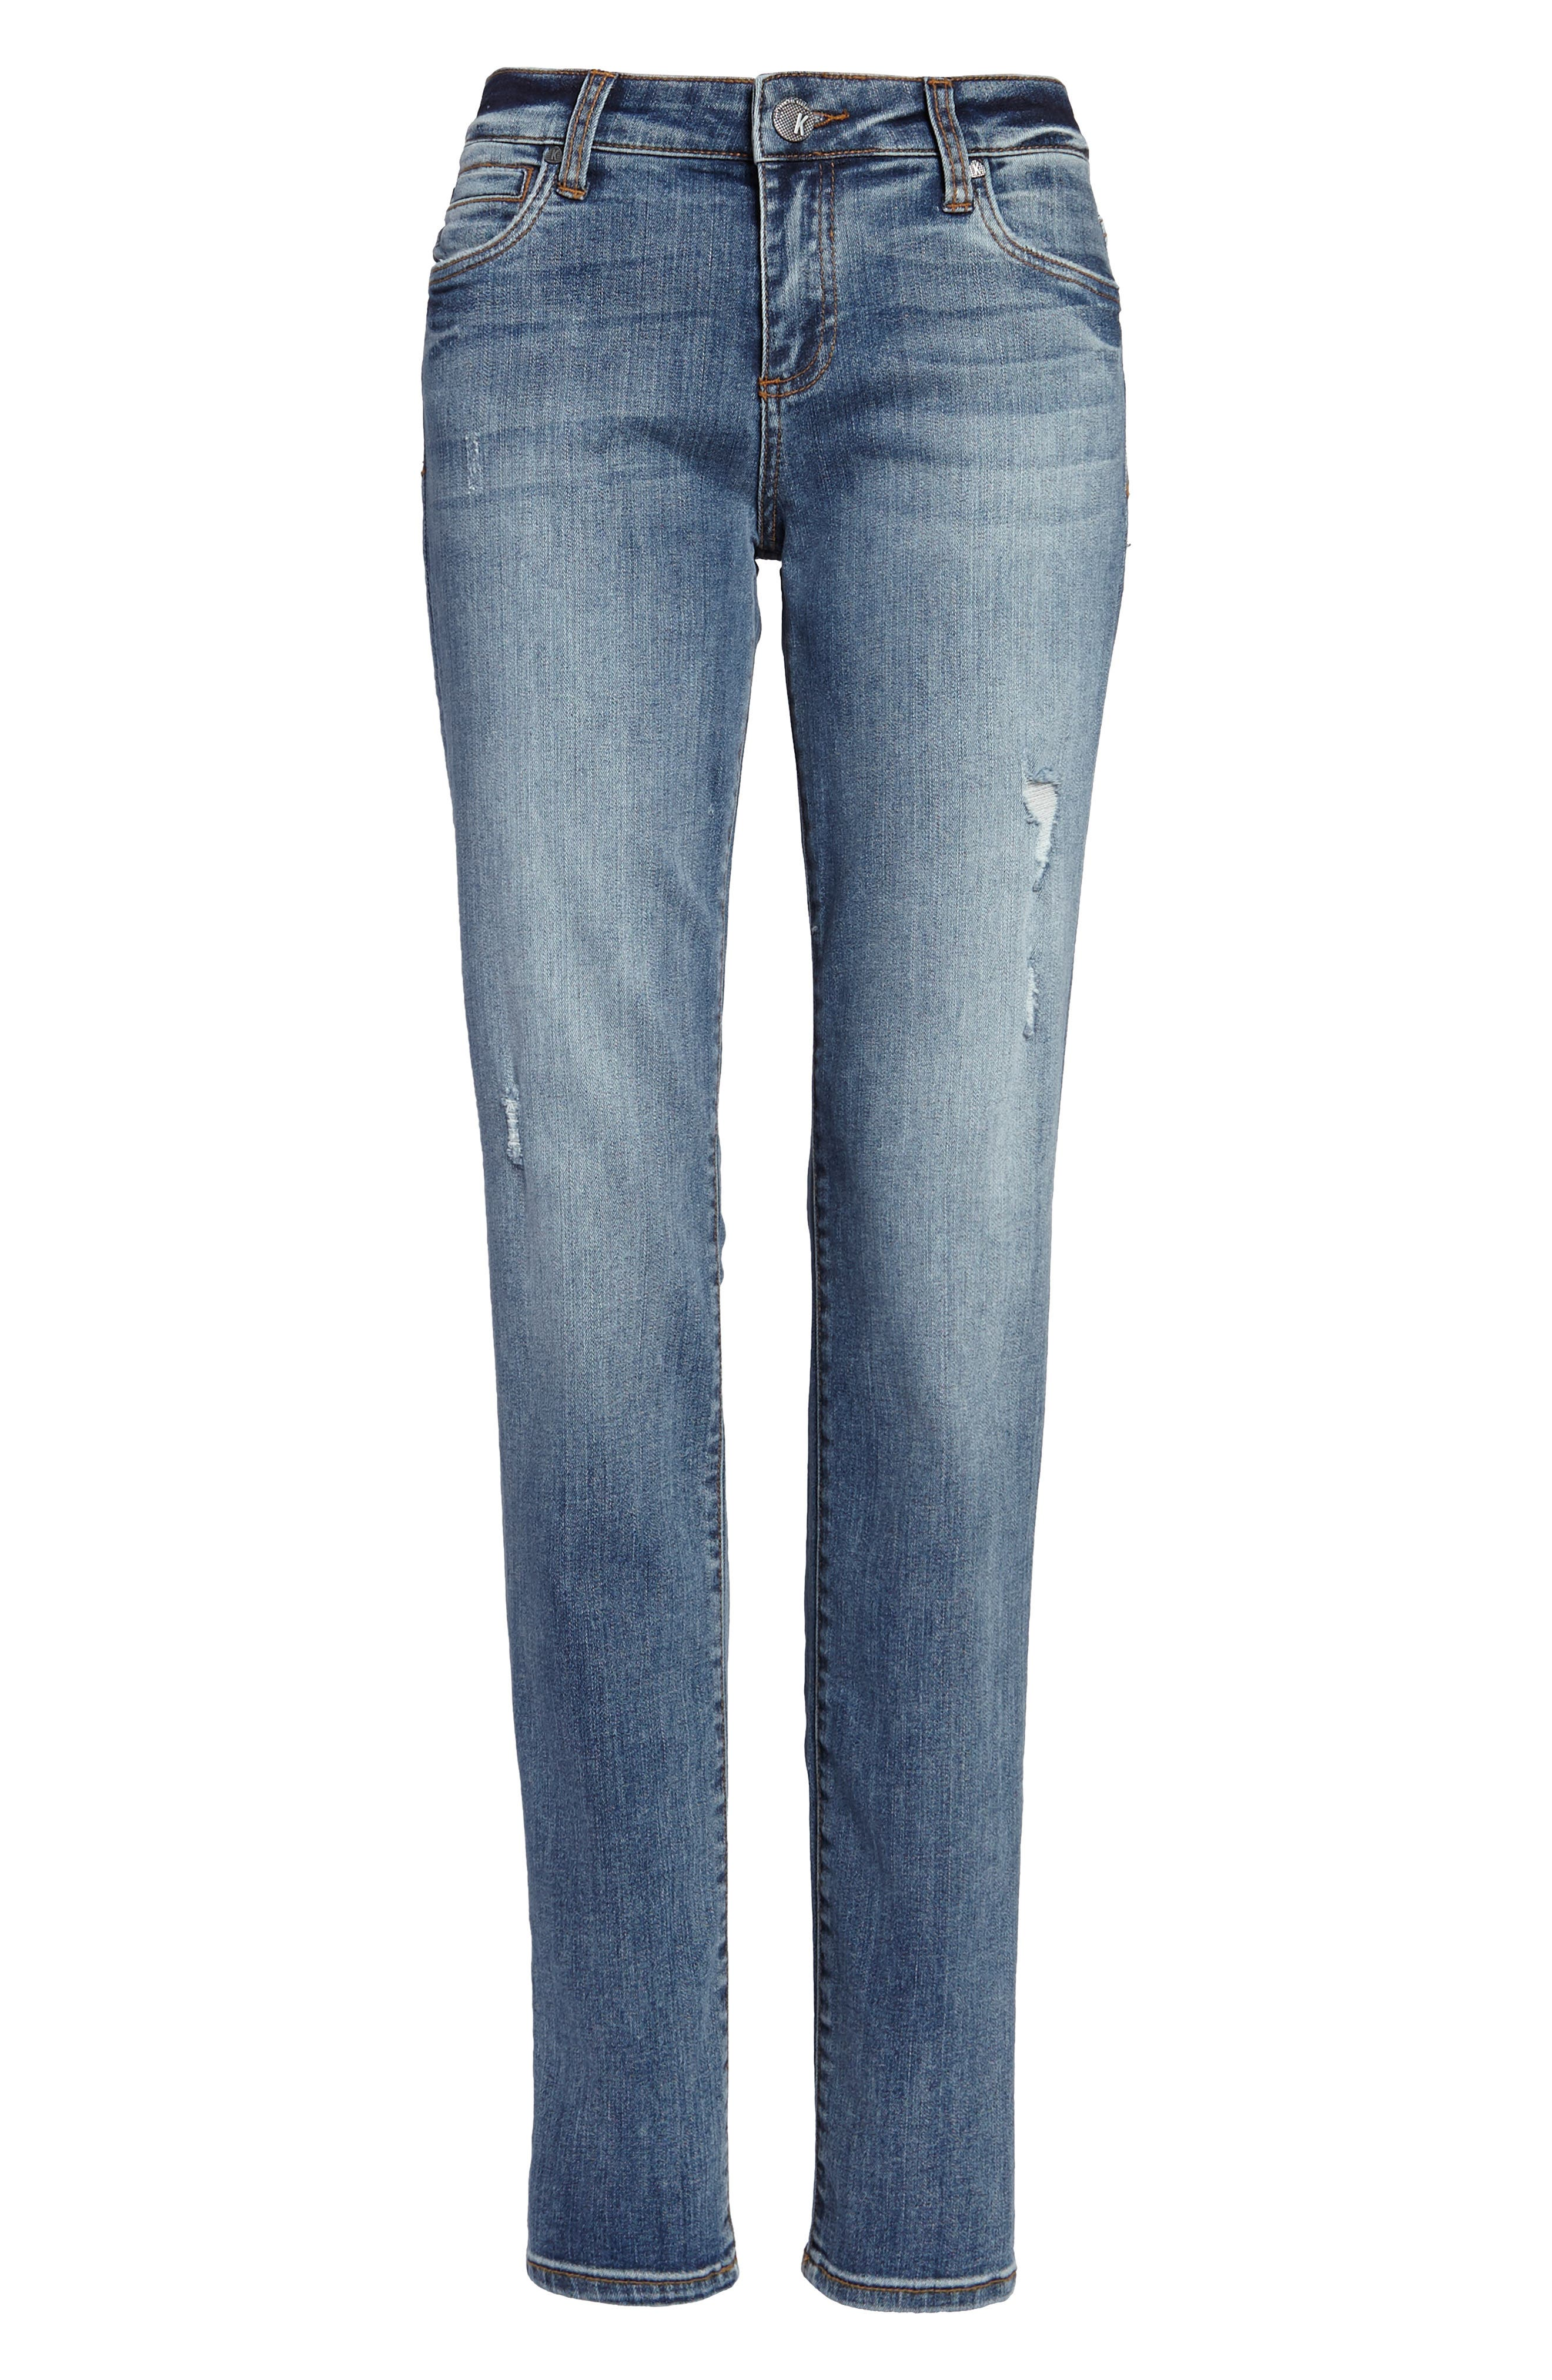 Diana Stretch Skinny Jeans,                             Alternate thumbnail 5, color,